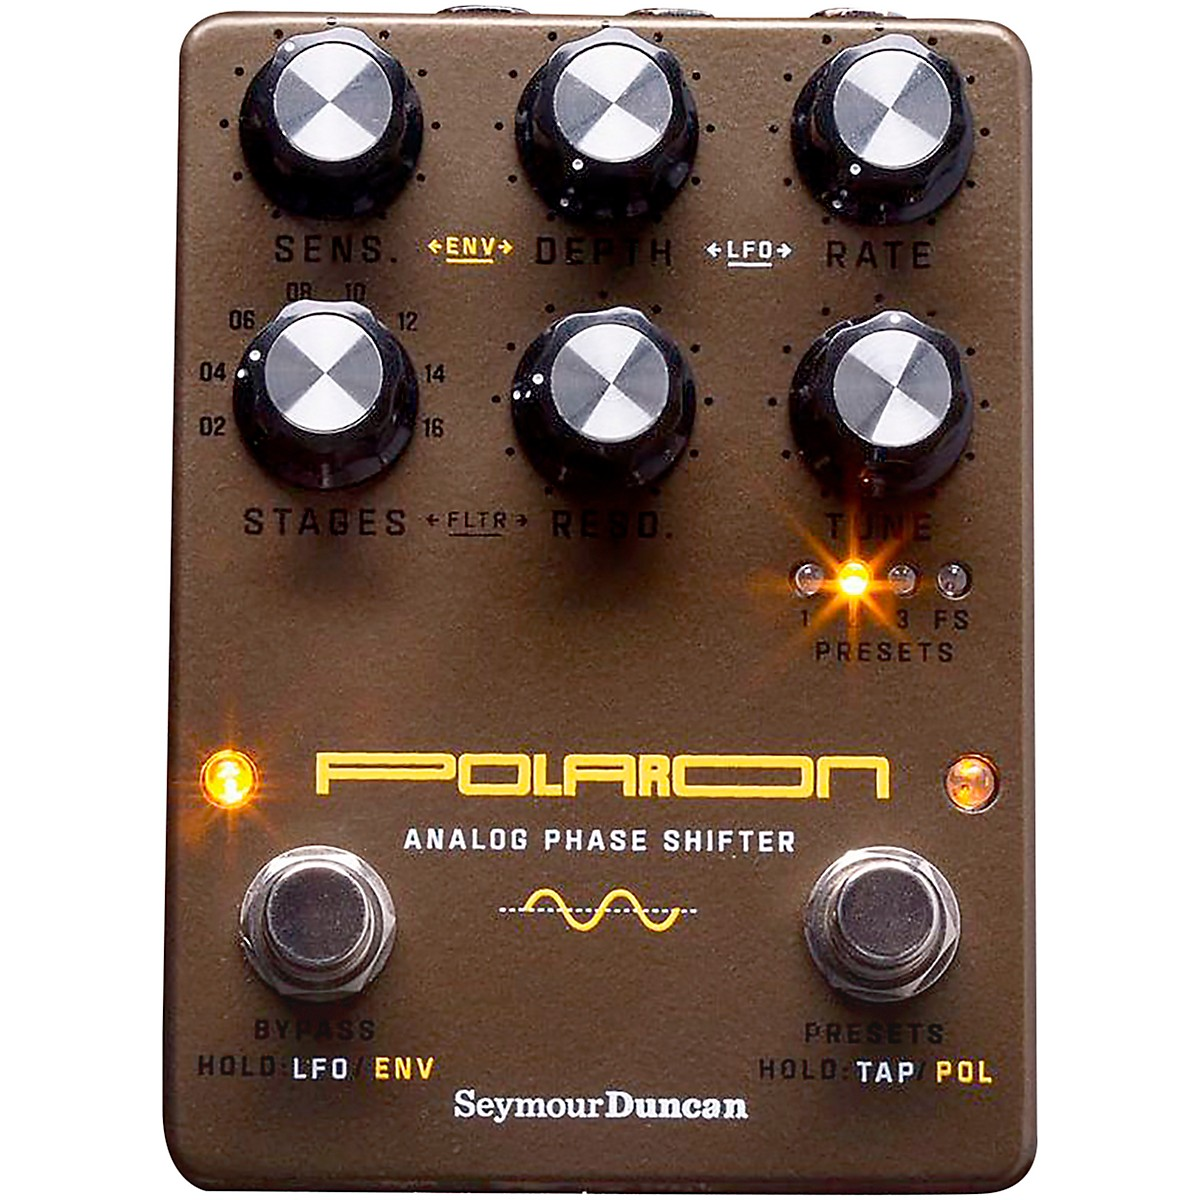 Seymour Duncan Polaron Analog Phase Shifter Effects Pedal